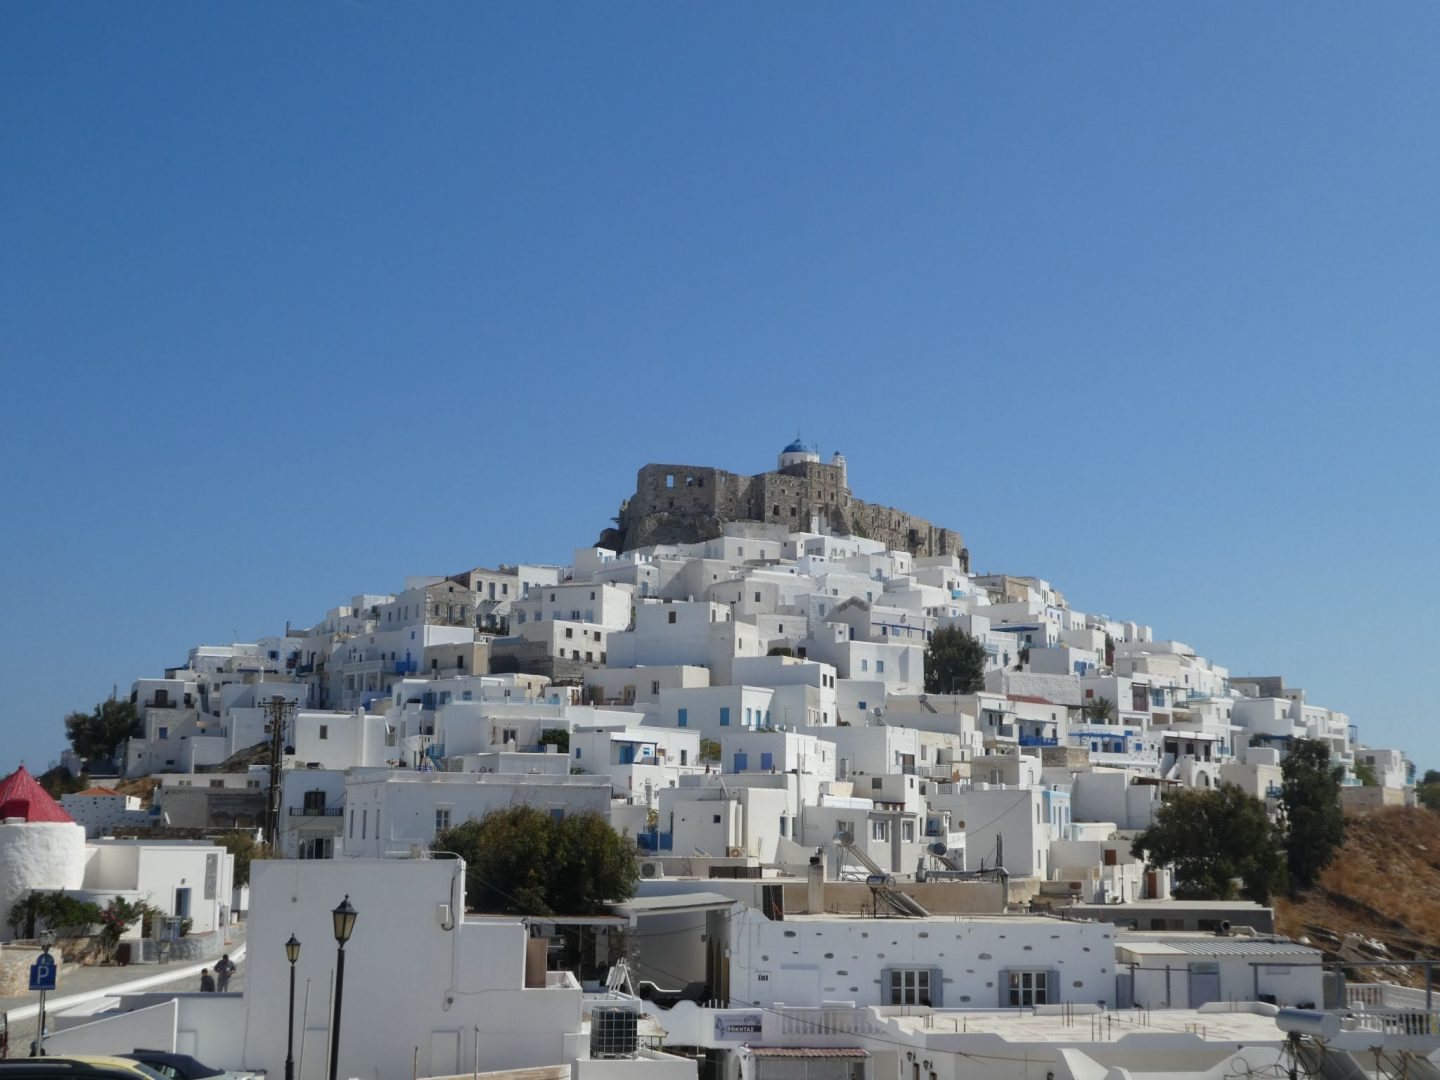 Cyclades (8 to 29 October 2019)